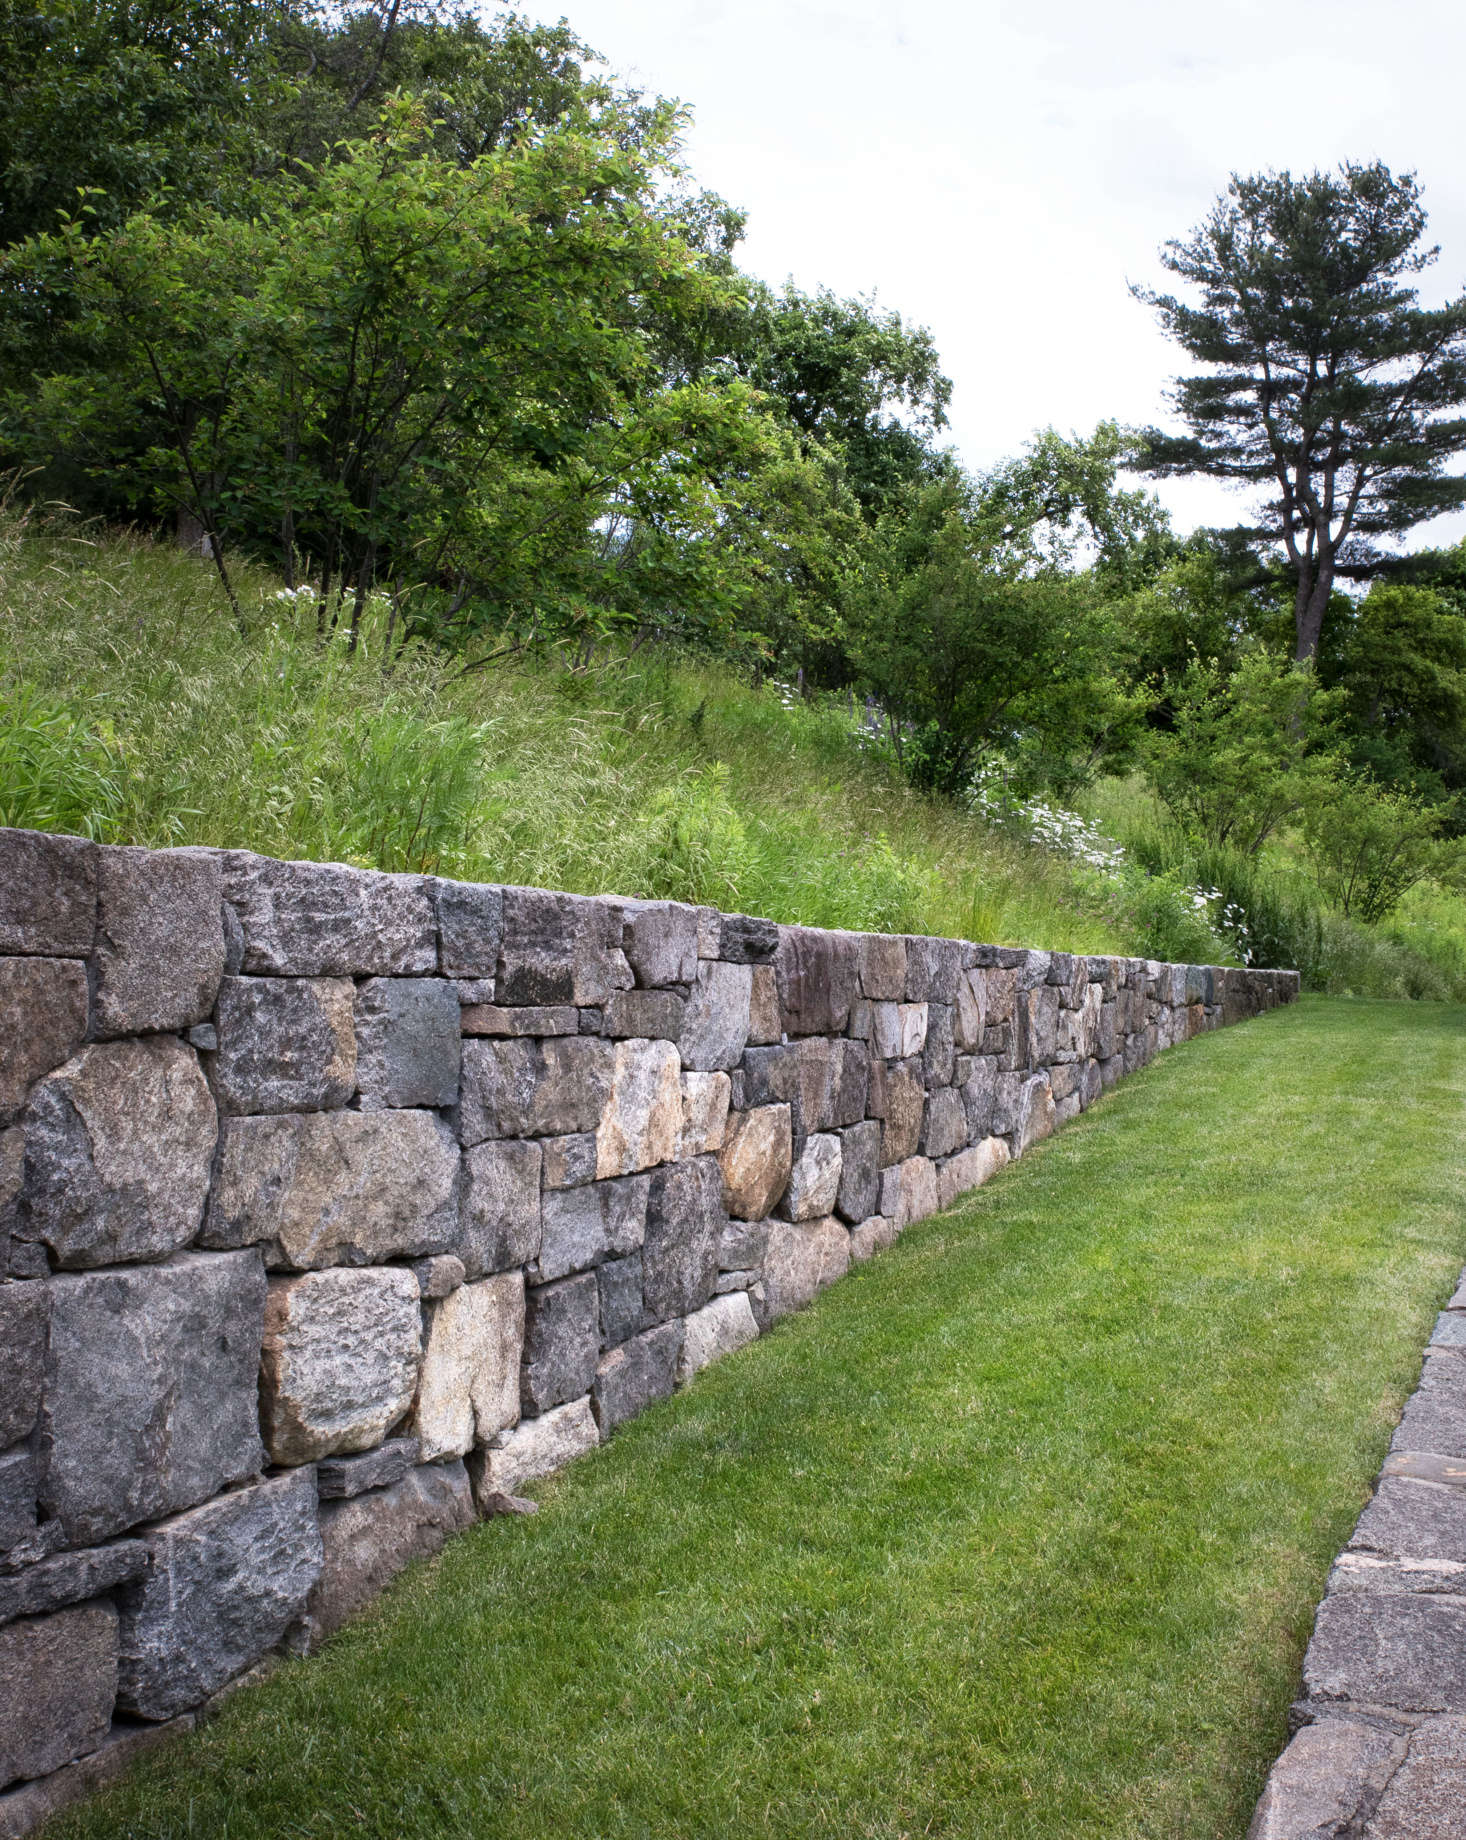 "The four, new, fieldstone walls on the property were constructed using locally sourced stones carefully chosen for its character and appearance. All new walls utilized stones that were intentionally larger and rough-hewn to blend with the rustic surroundings. Some show a combination of ""faces,"" some are naturally weathered, while others show a tooled edge; all so that the newly built wall feels older."